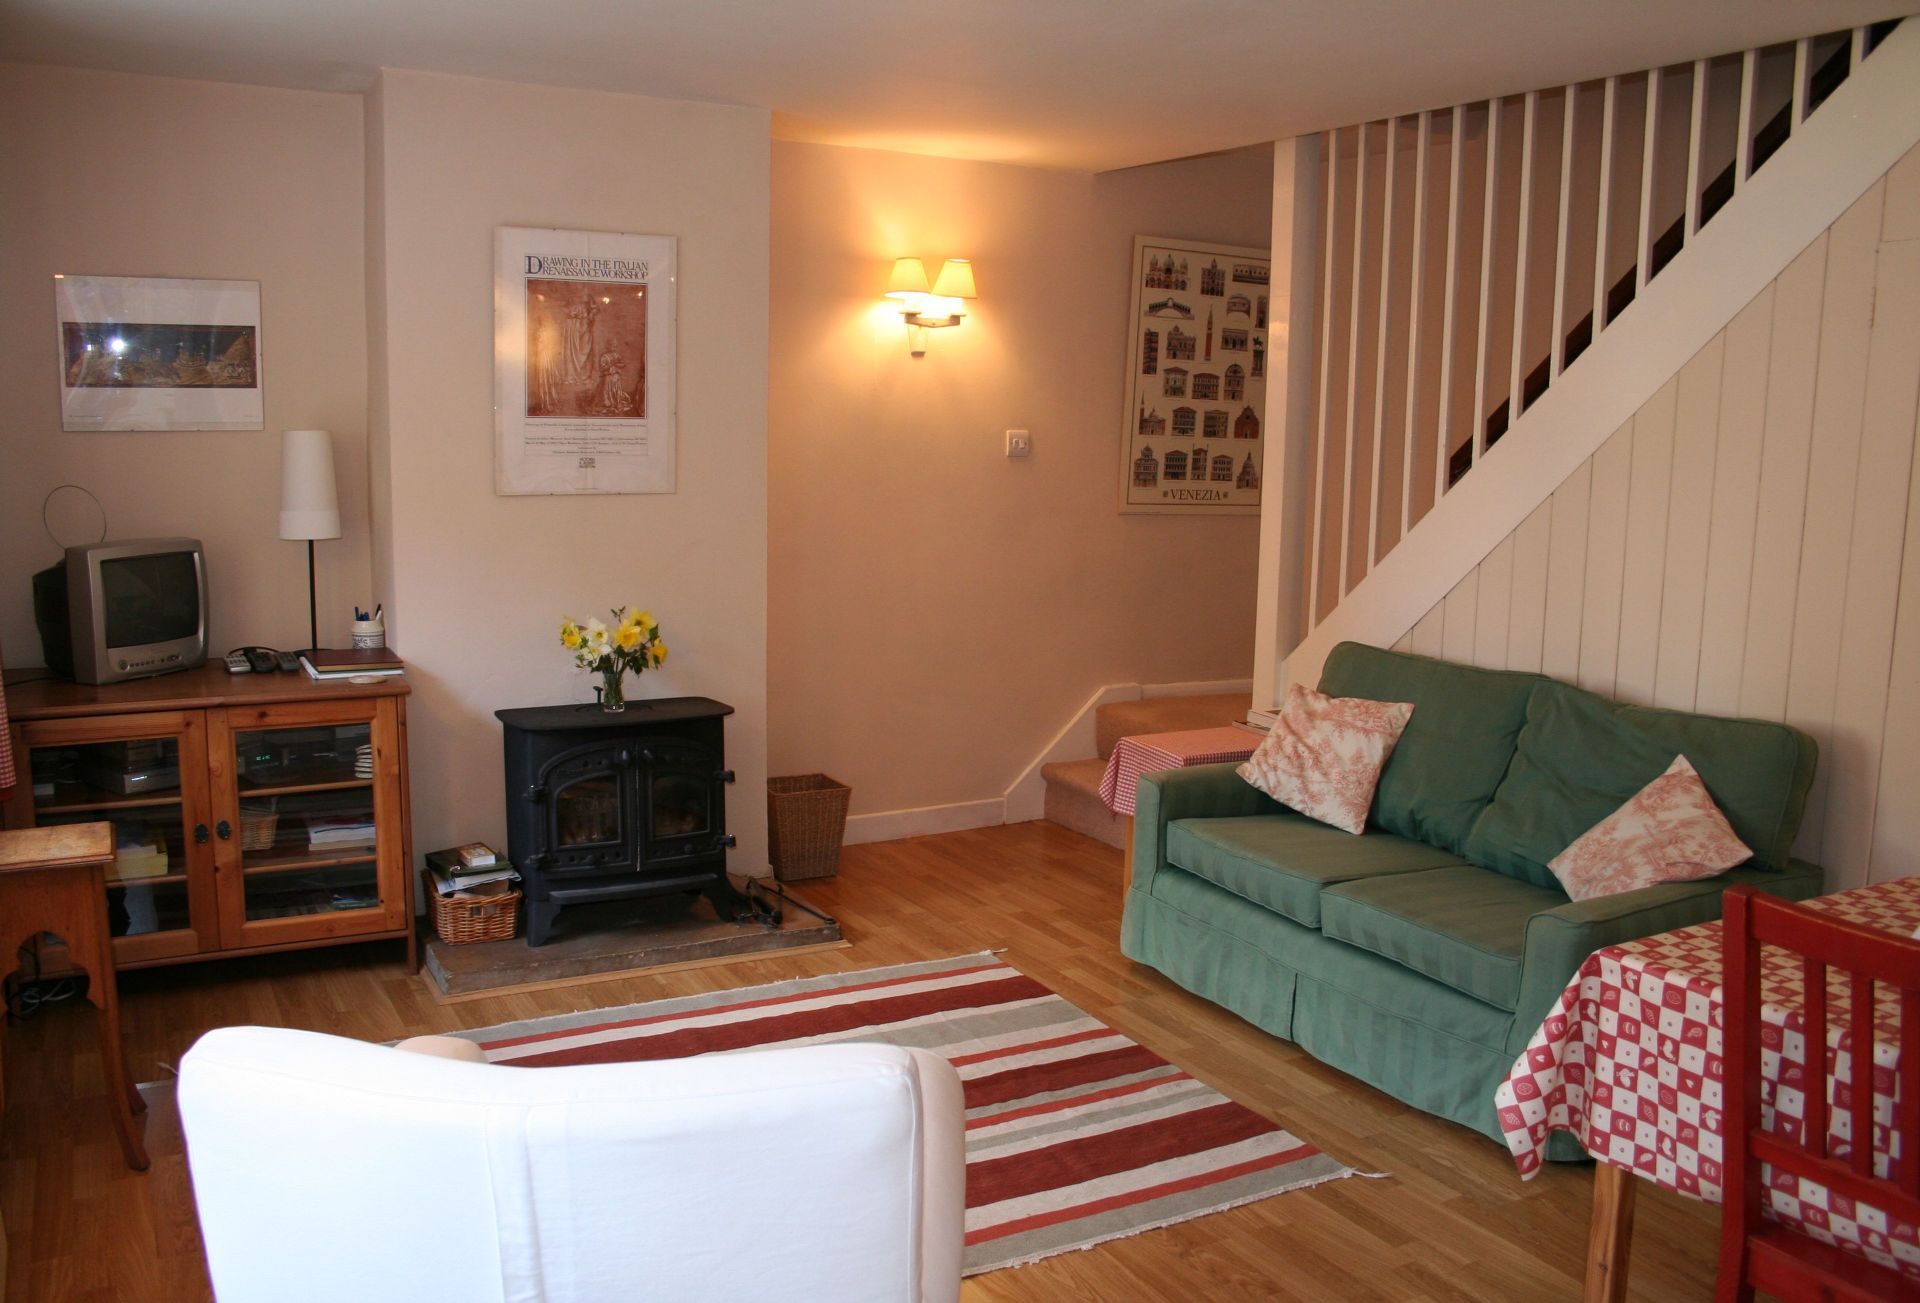 Another aspect of the open-plan Living area